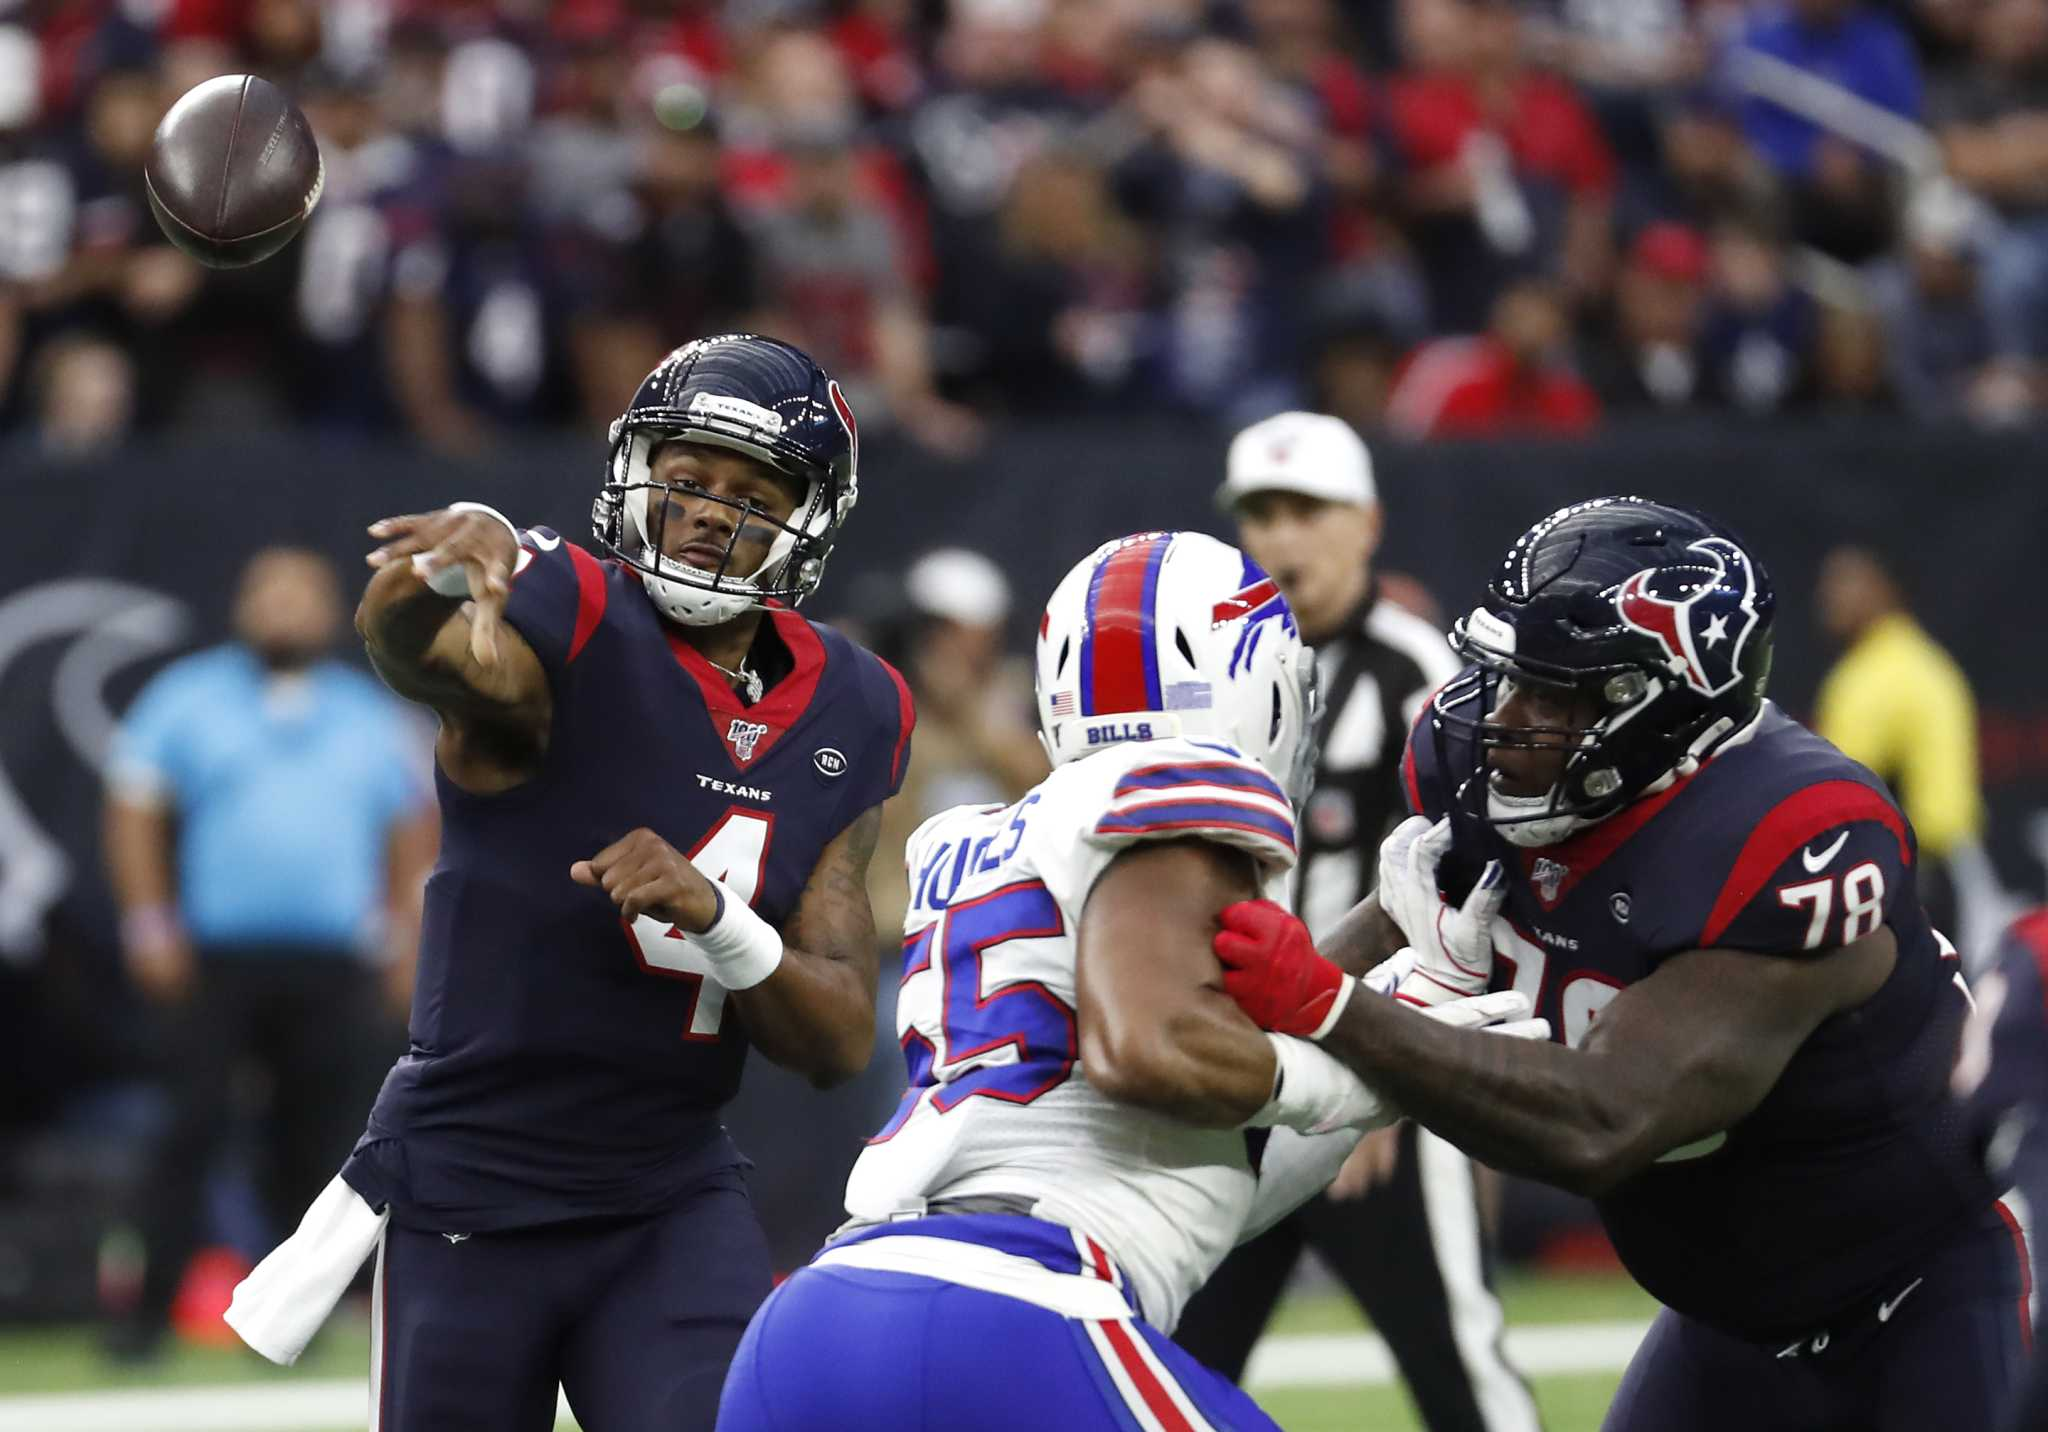 Texans rally past Bills to take playoff